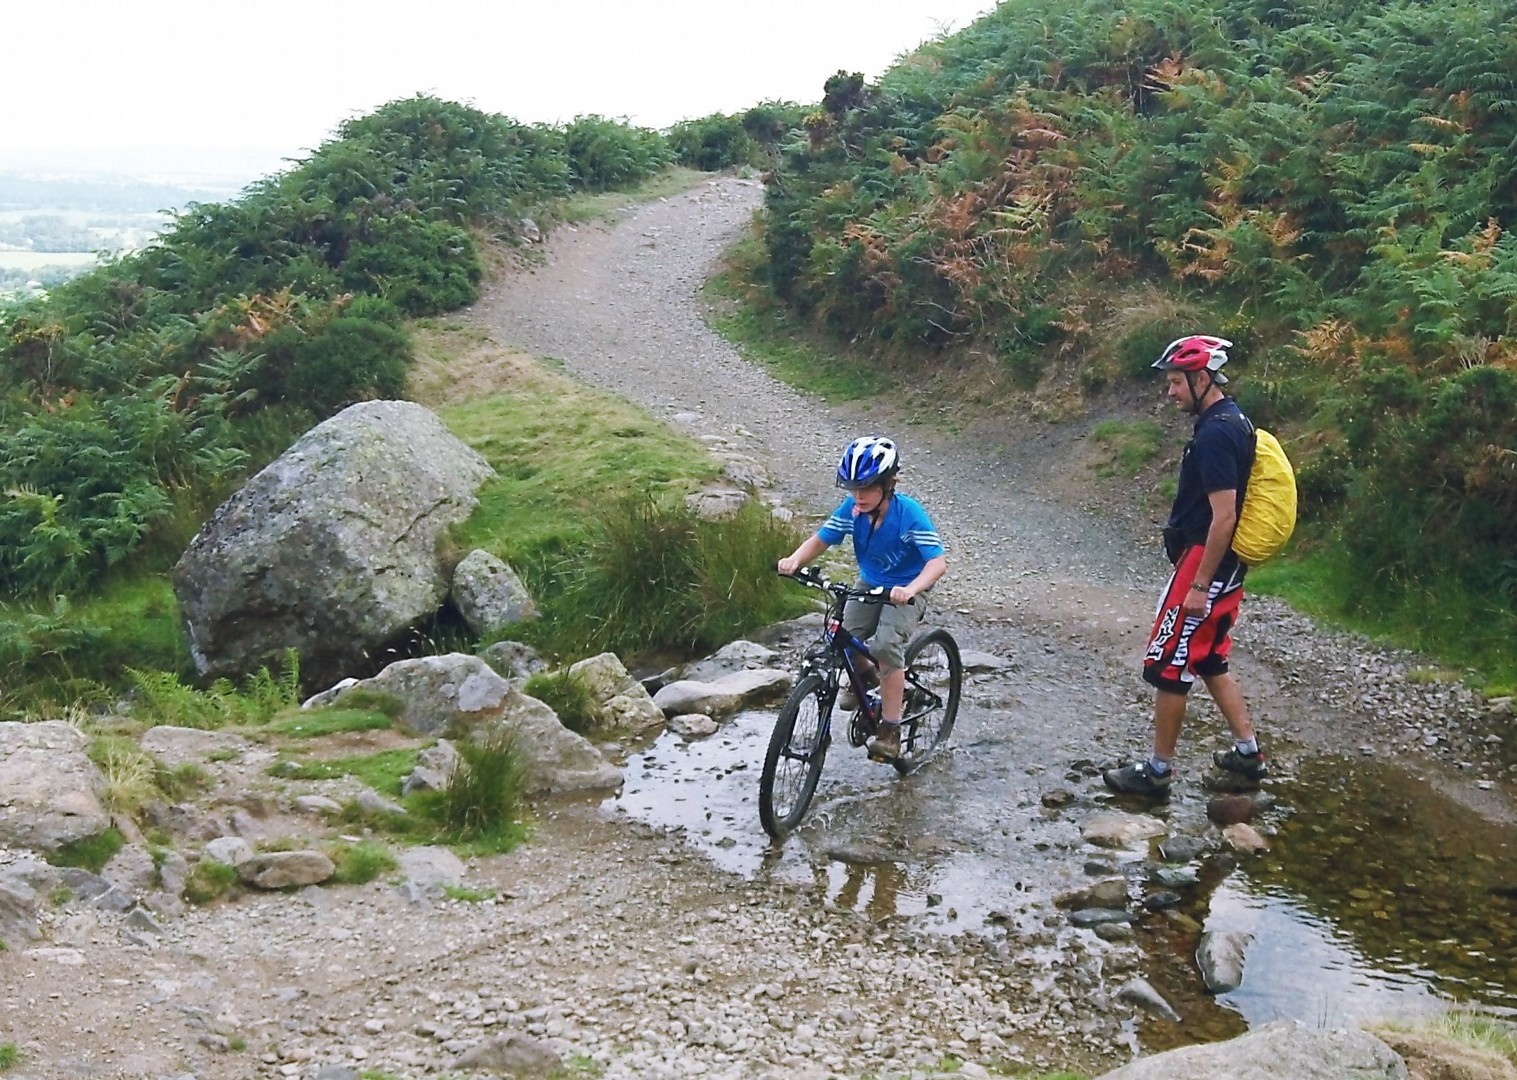 lake-district-uk-bike-skills.jpg - UK - Lake District - Guided Family Bike Skills - Family Cycling